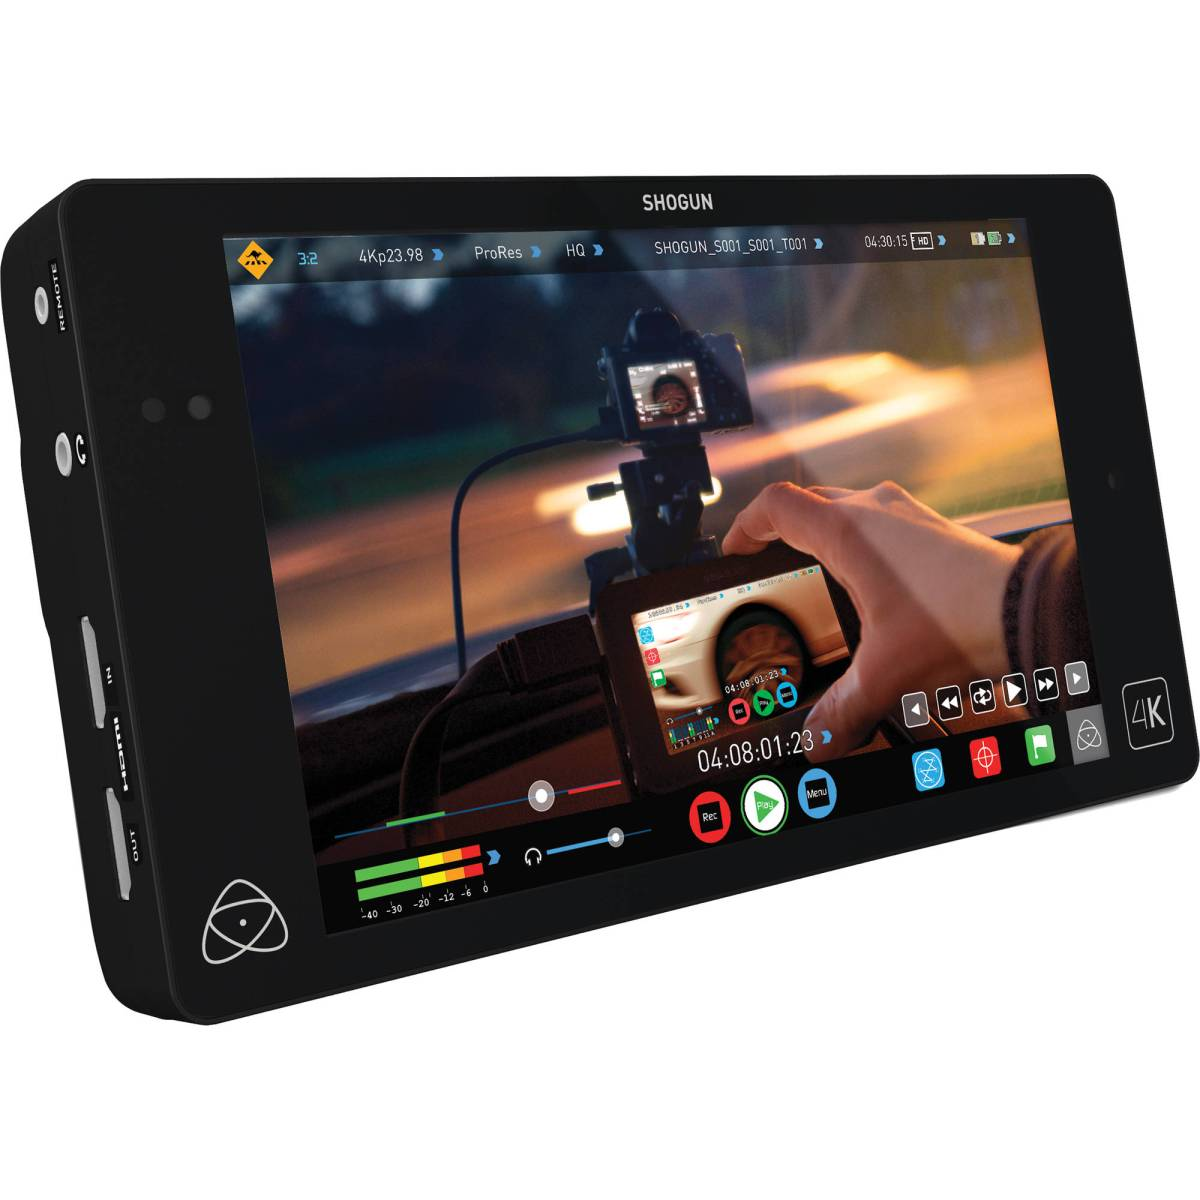 Atomos Shogun Review (Why You Don't Need ProRes)